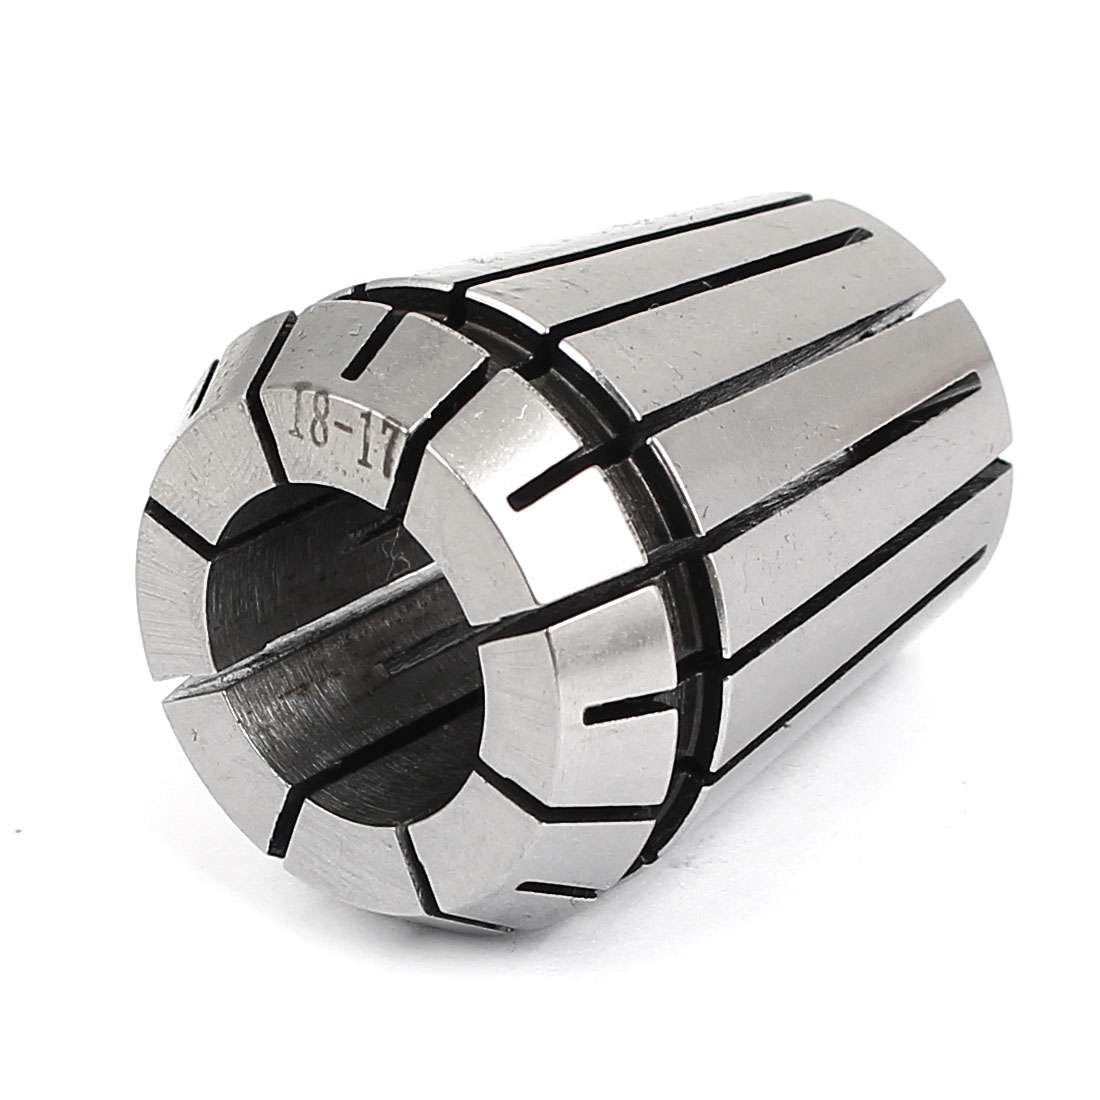 ER32 18mm Clamping Dia CNC Engraving Milling Machine Spring Collet